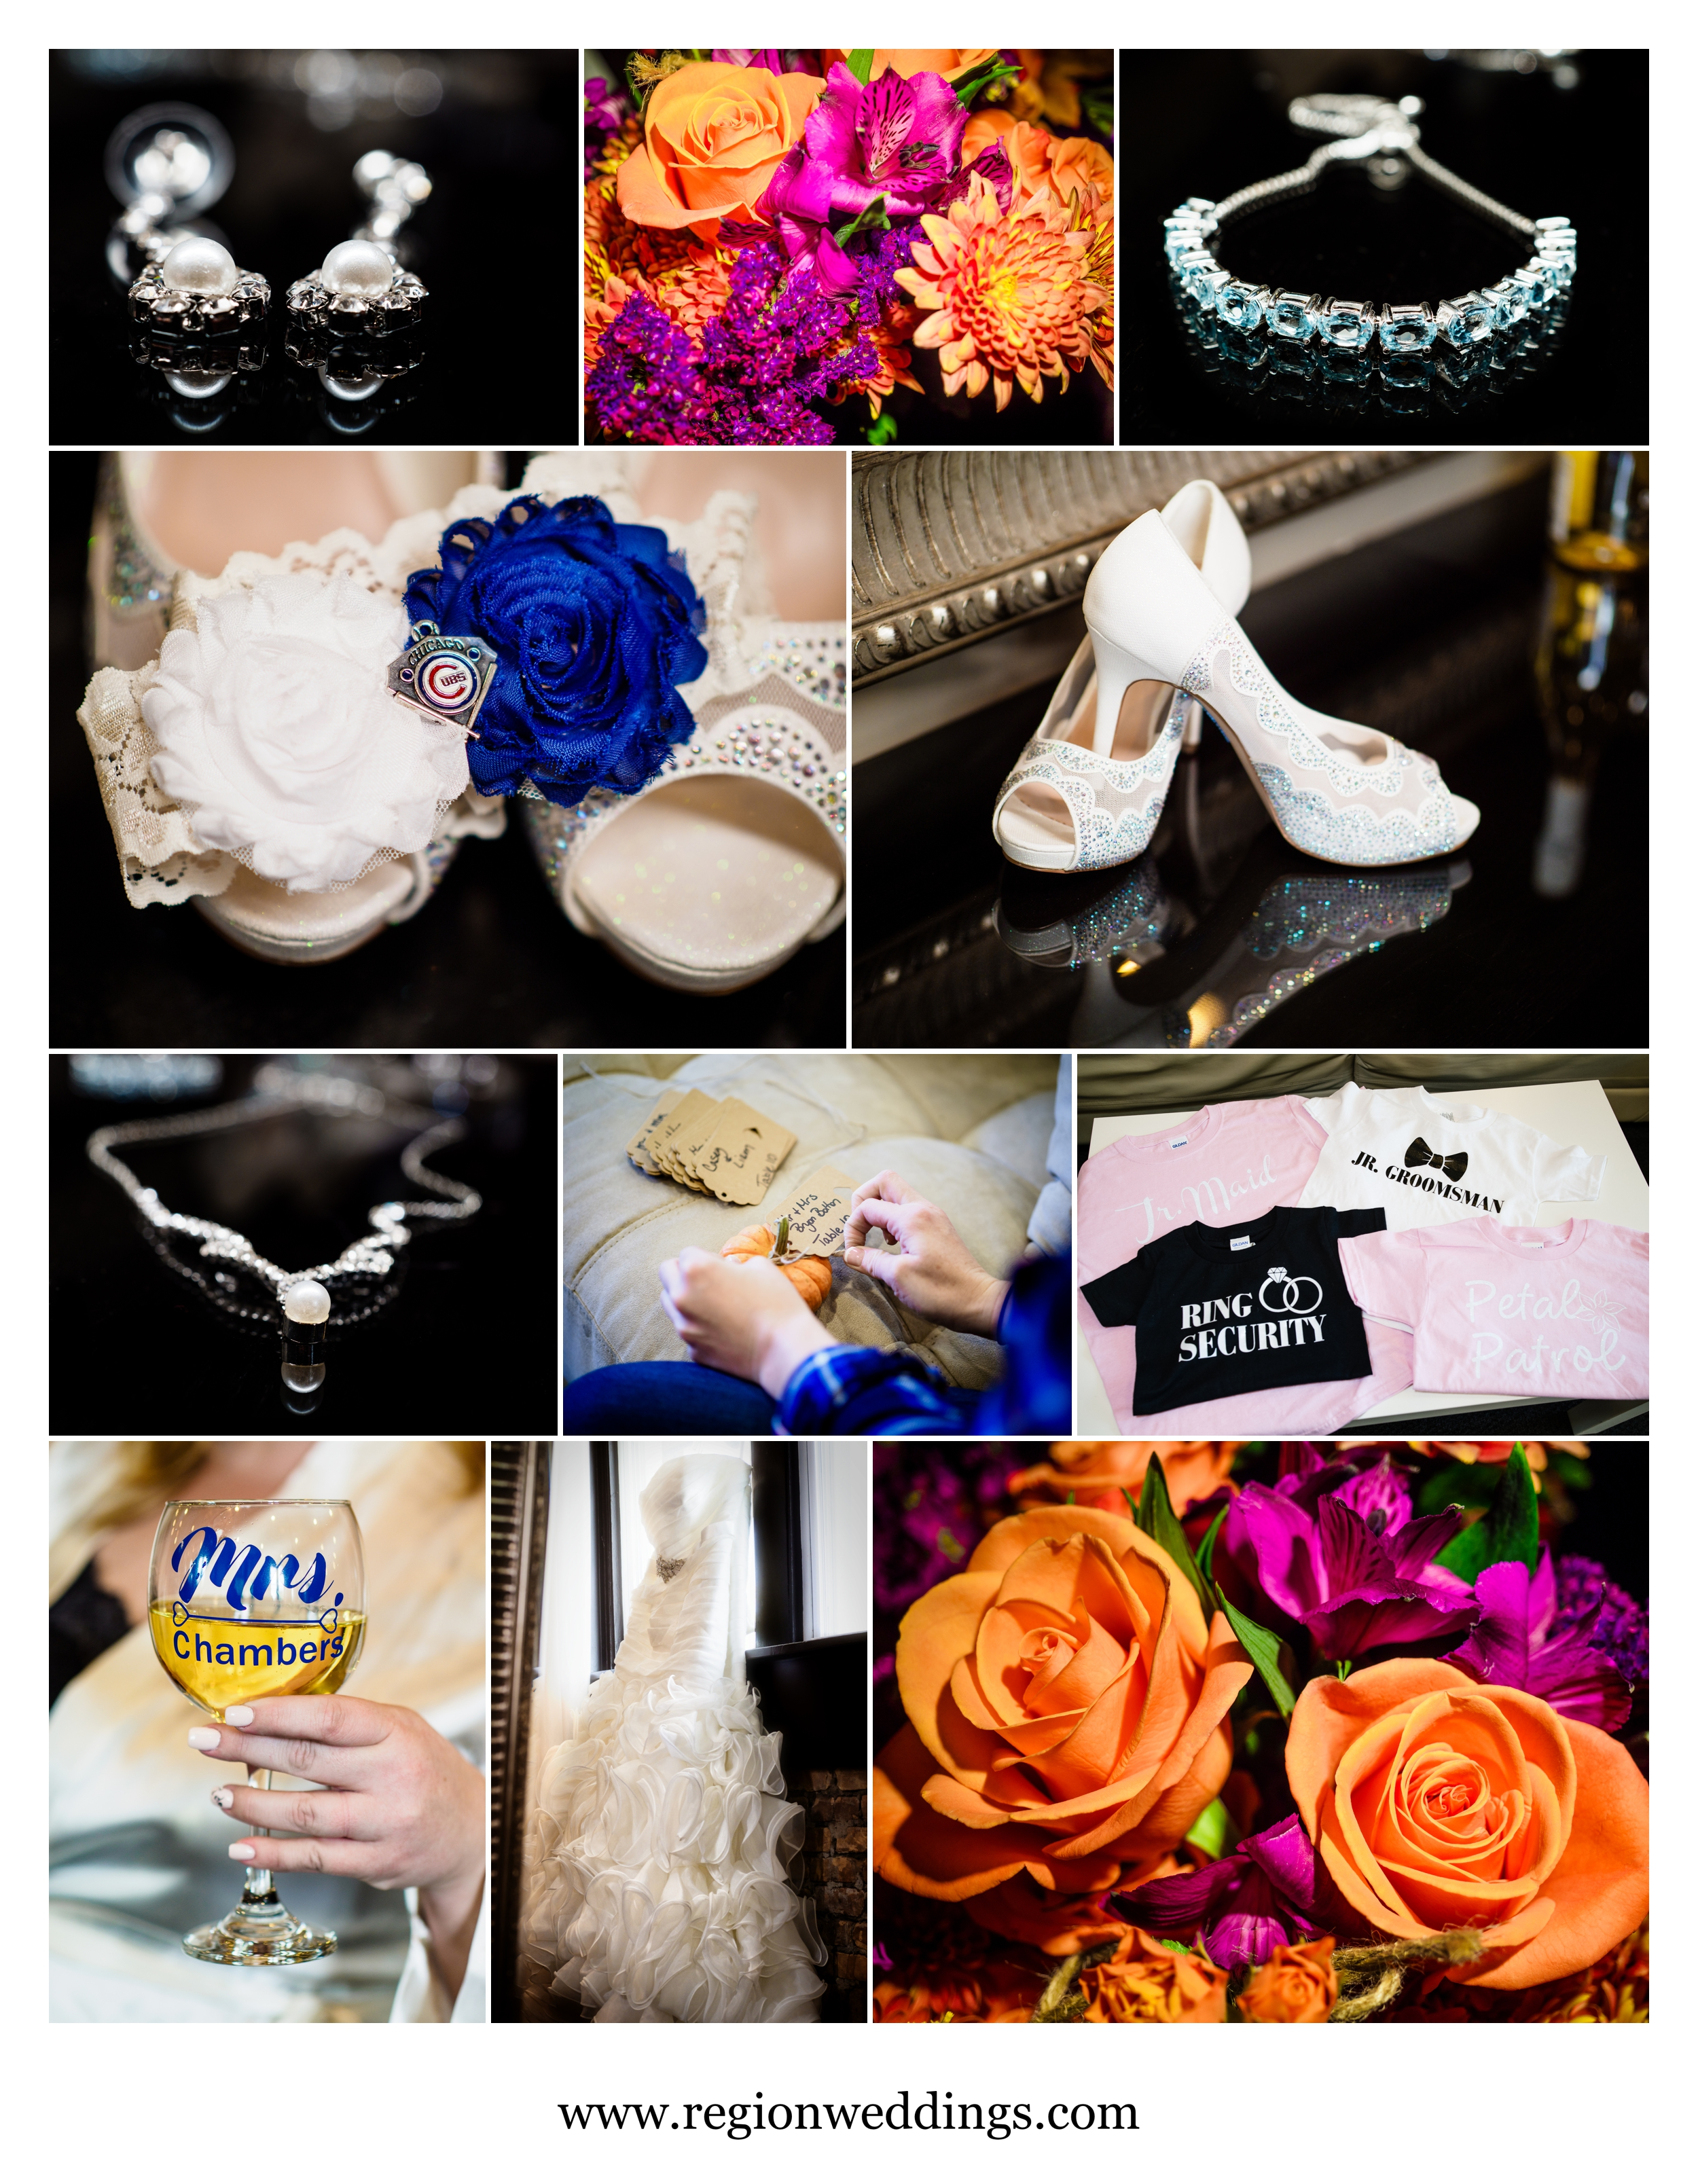 Bridal details at The Allure in Laporte, Indiana.